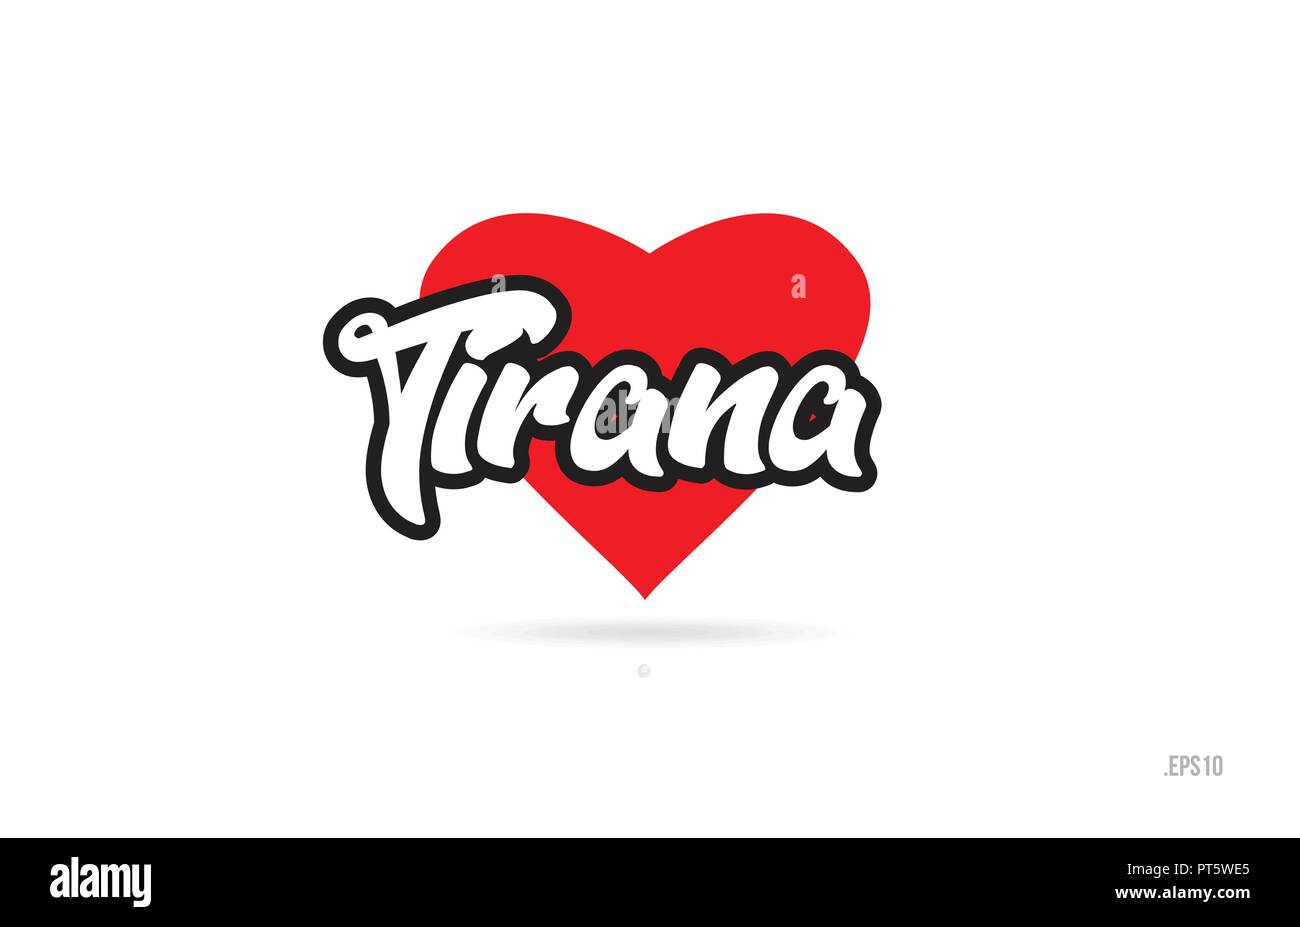 tirana city text design with red heart typographic icon design suitable for touristic promotion - Stock Vector